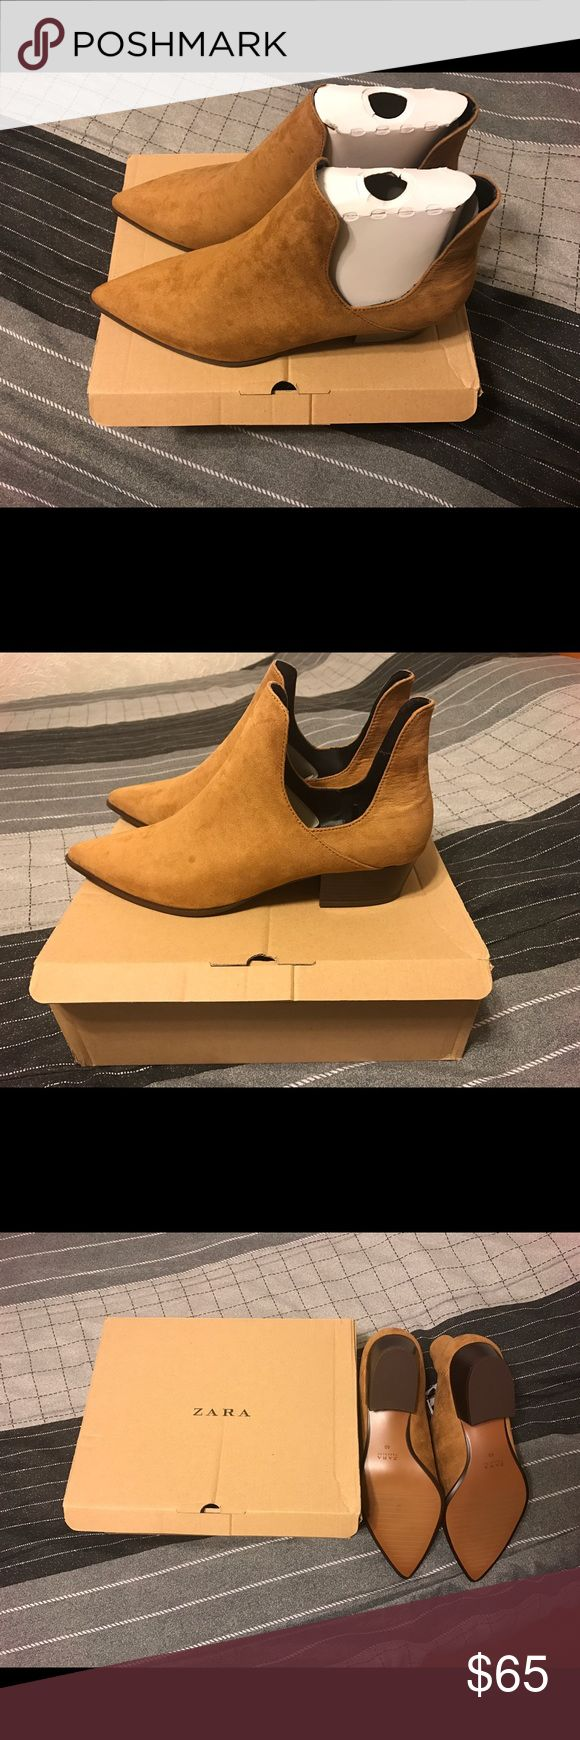 Zara open ankle boots with heel Zara open ankle boots with heel. Brand new, never worn, tags still attached, in original box & packaging. US size 9, Euro size 40. Color: Leather. Zara Shoes Ankle Boots & Booties